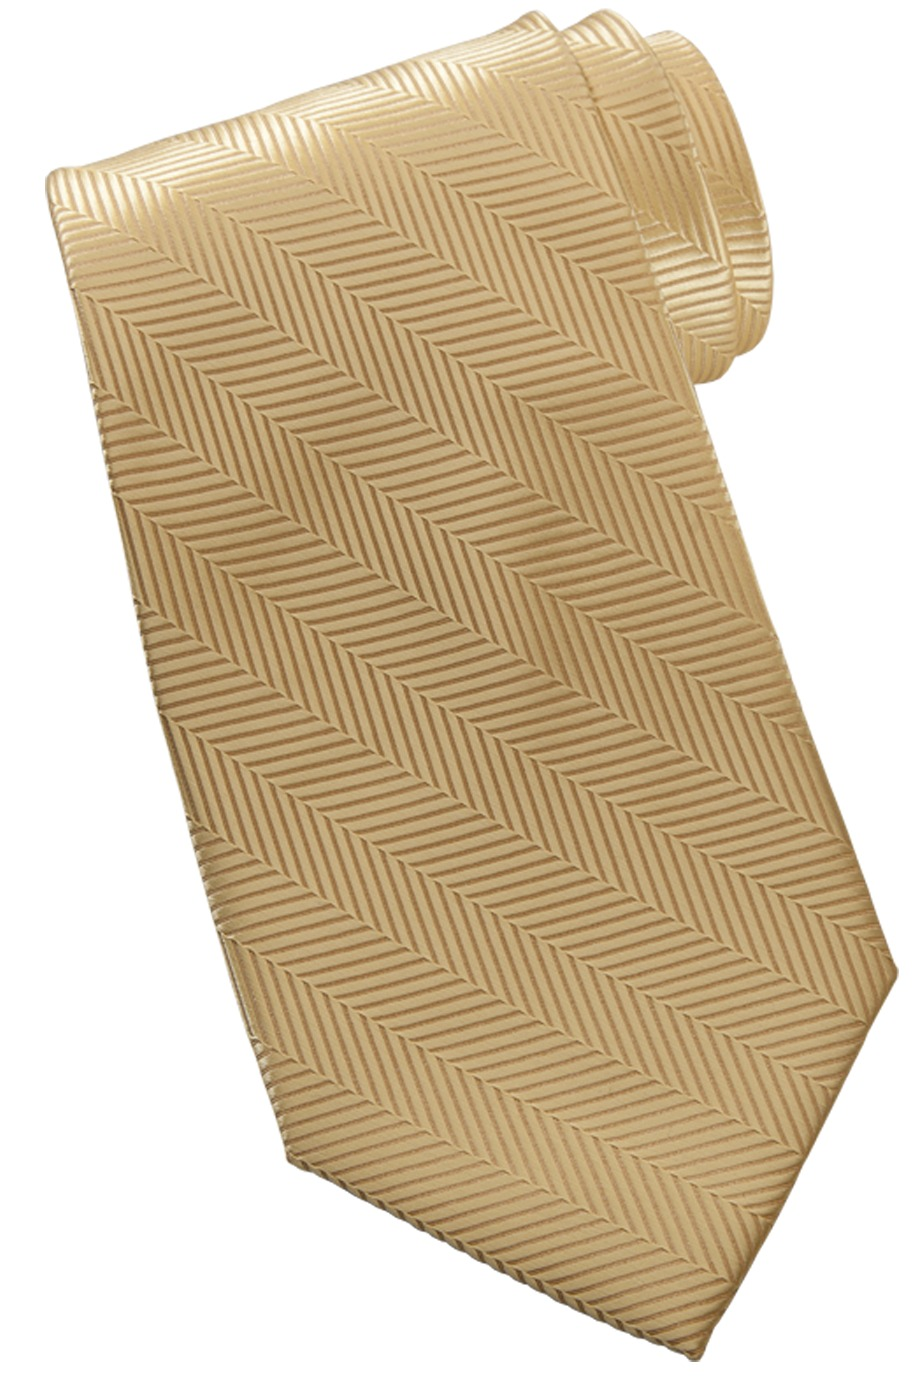 Edwards Garment HB00 - Herringbone Tie